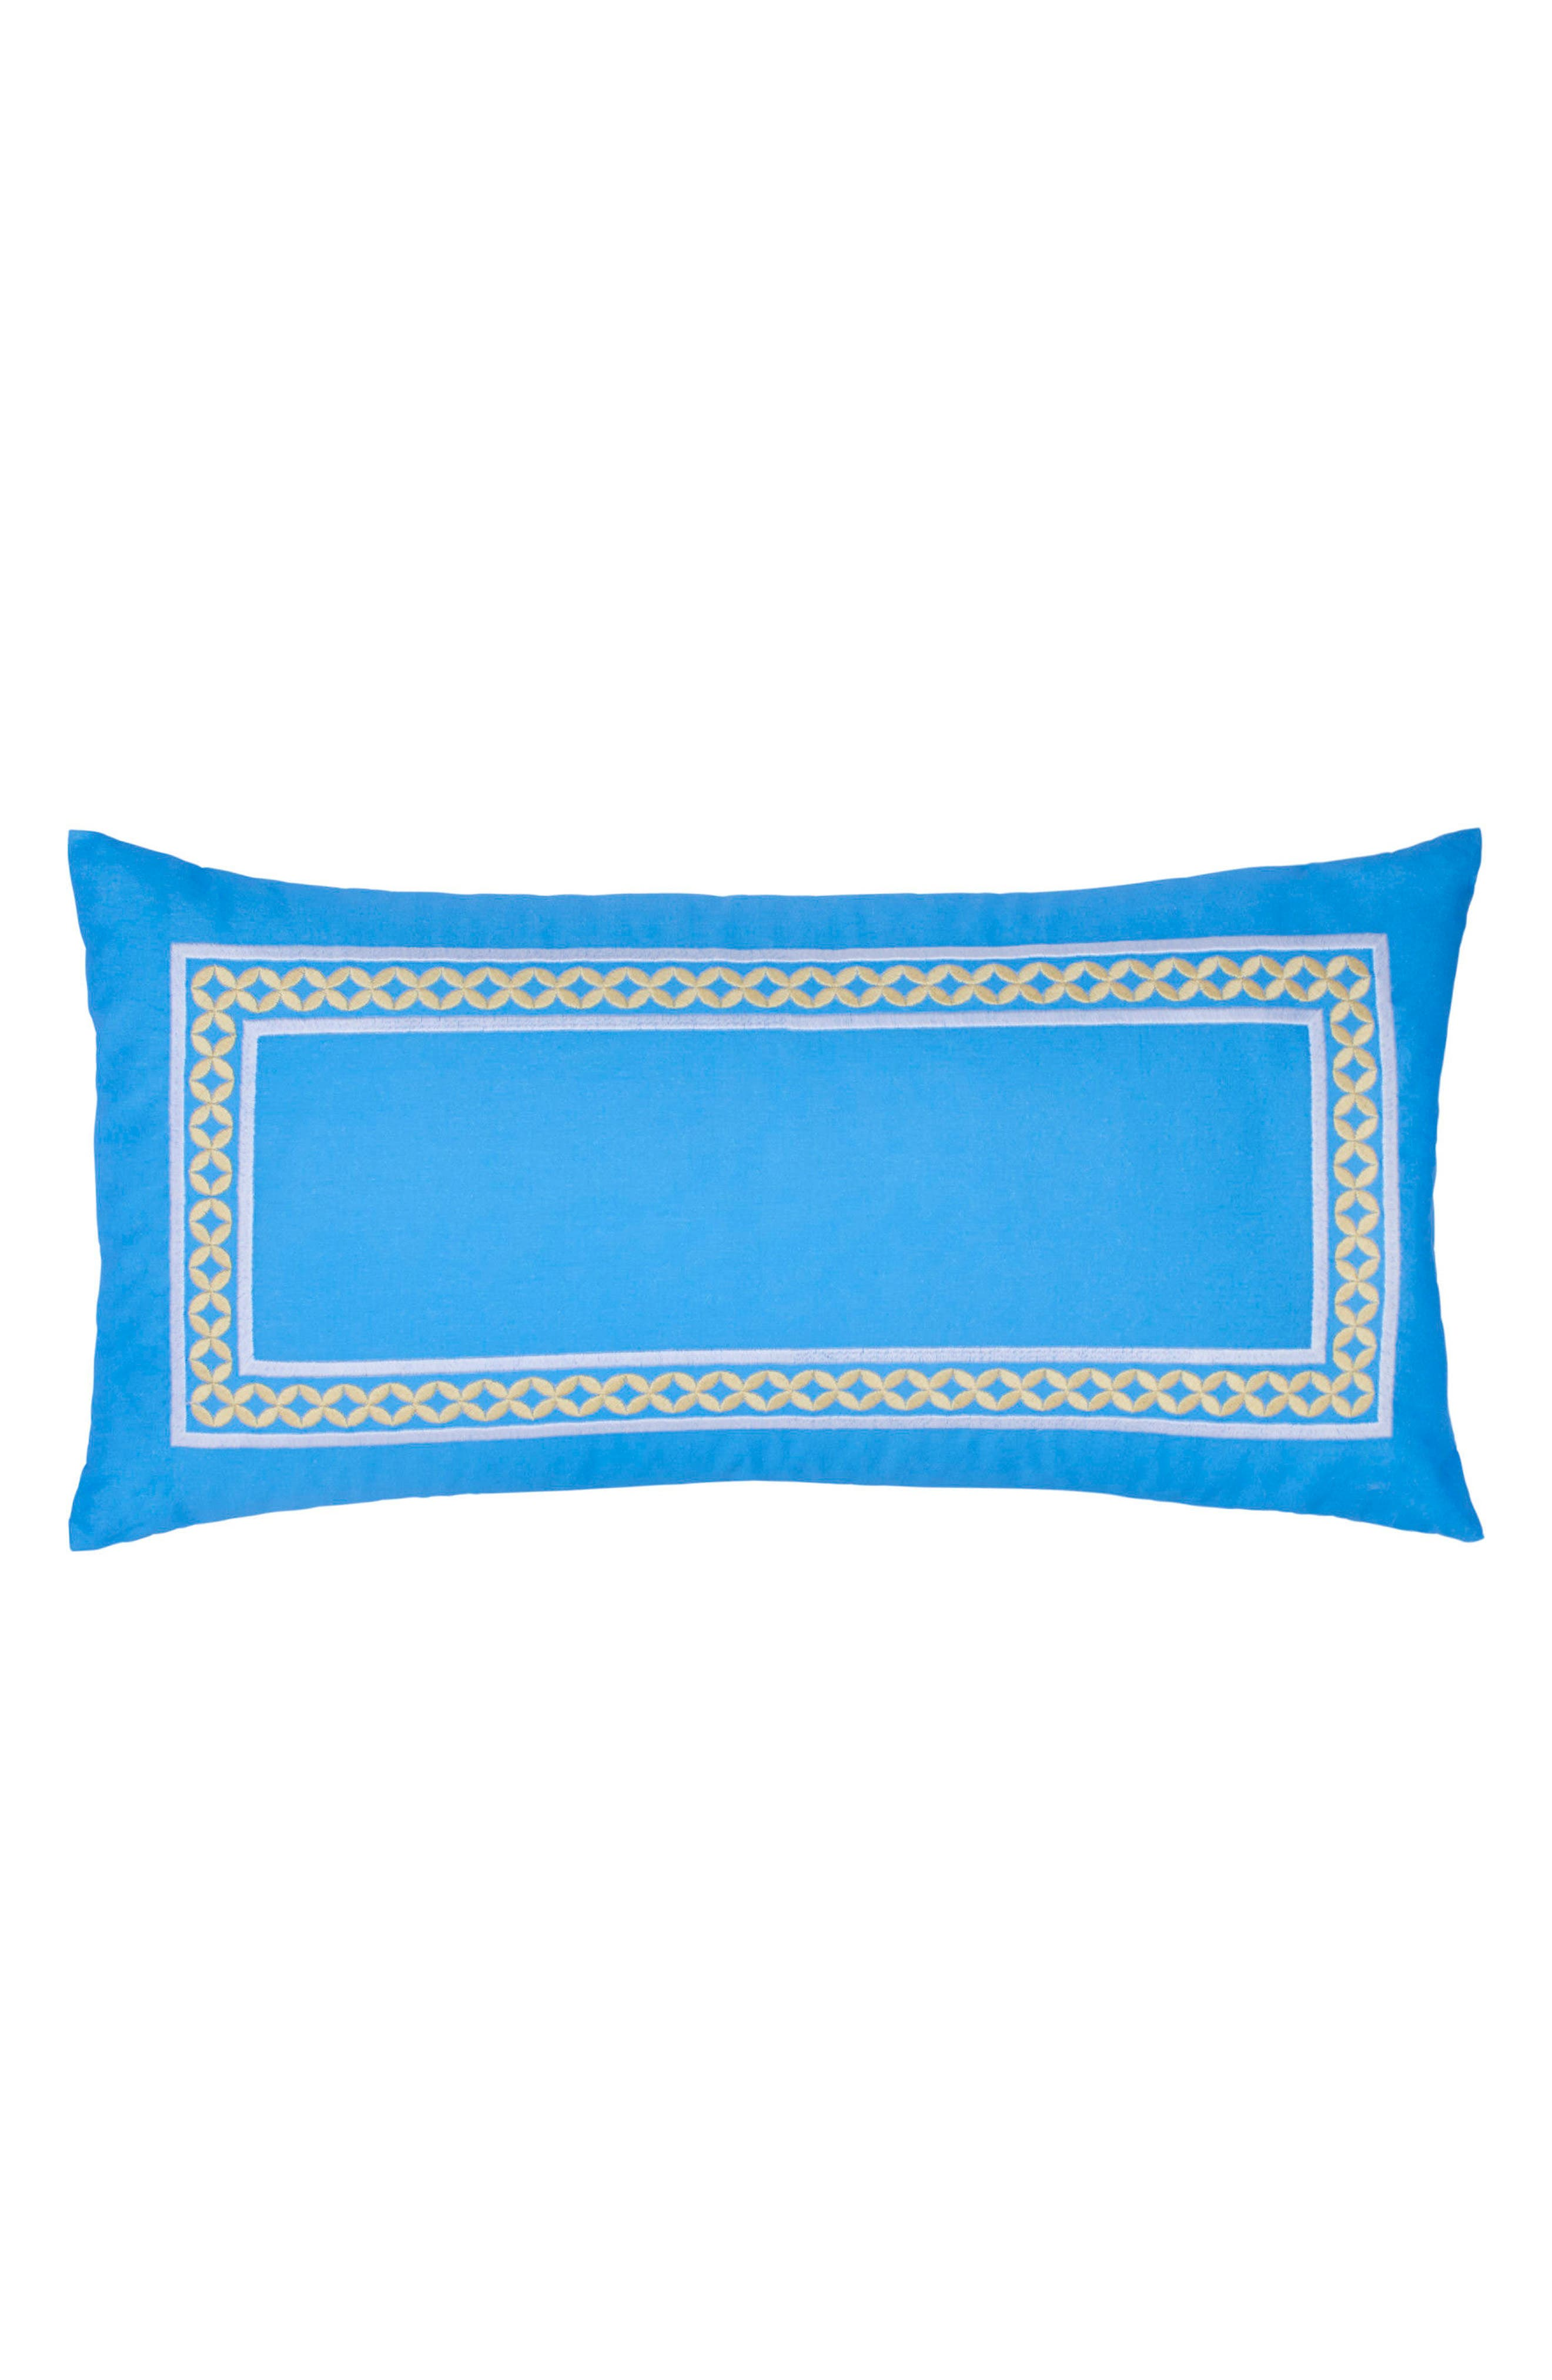 Sailgate Embroidered Border Accent Pillow,                             Main thumbnail 1, color,                             400